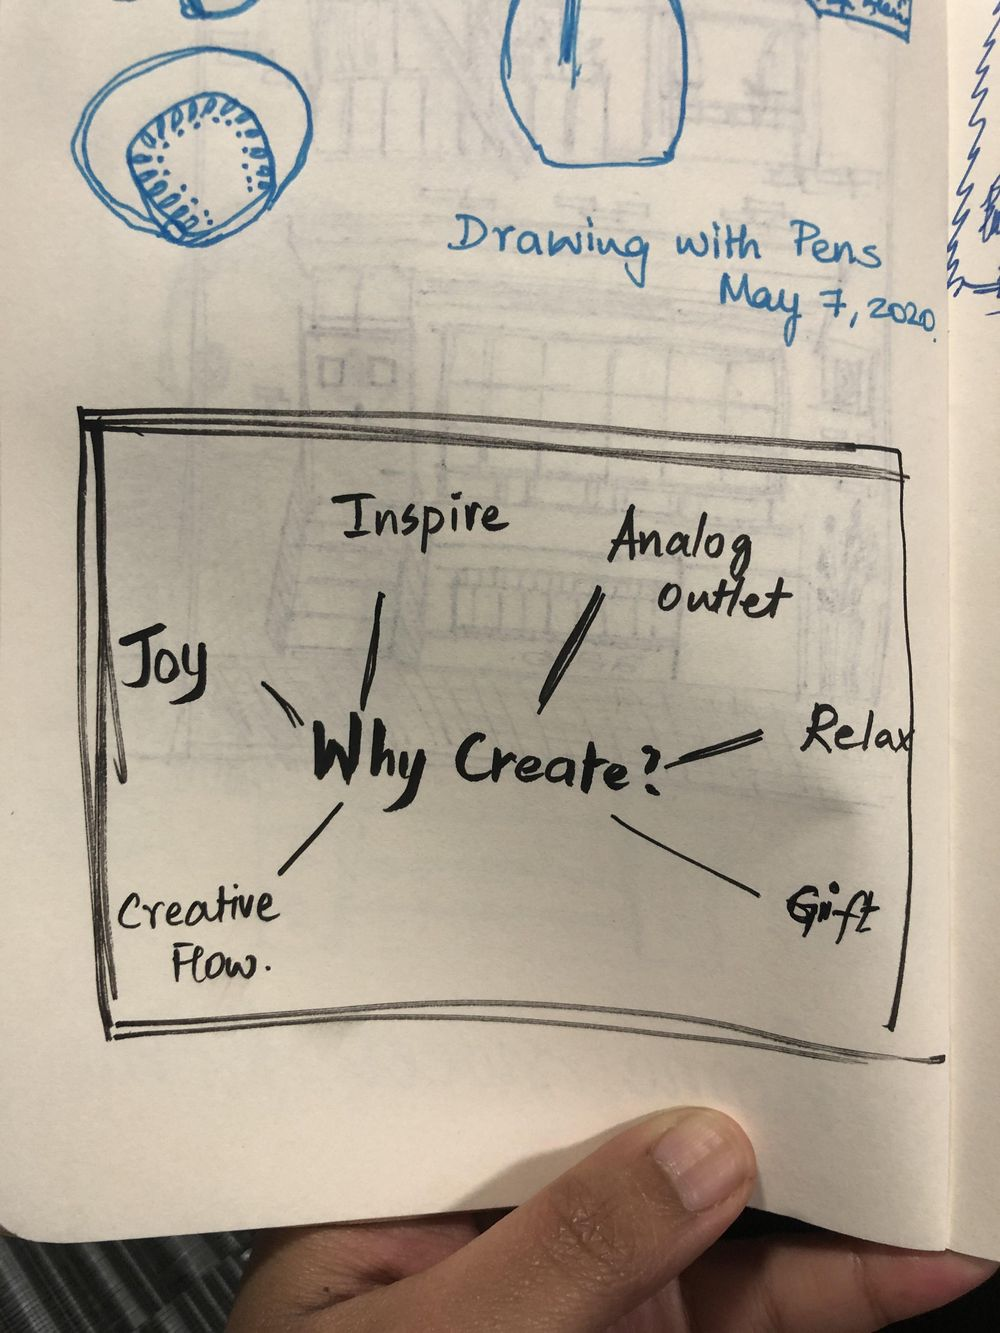 Why create? - image 1 - student project